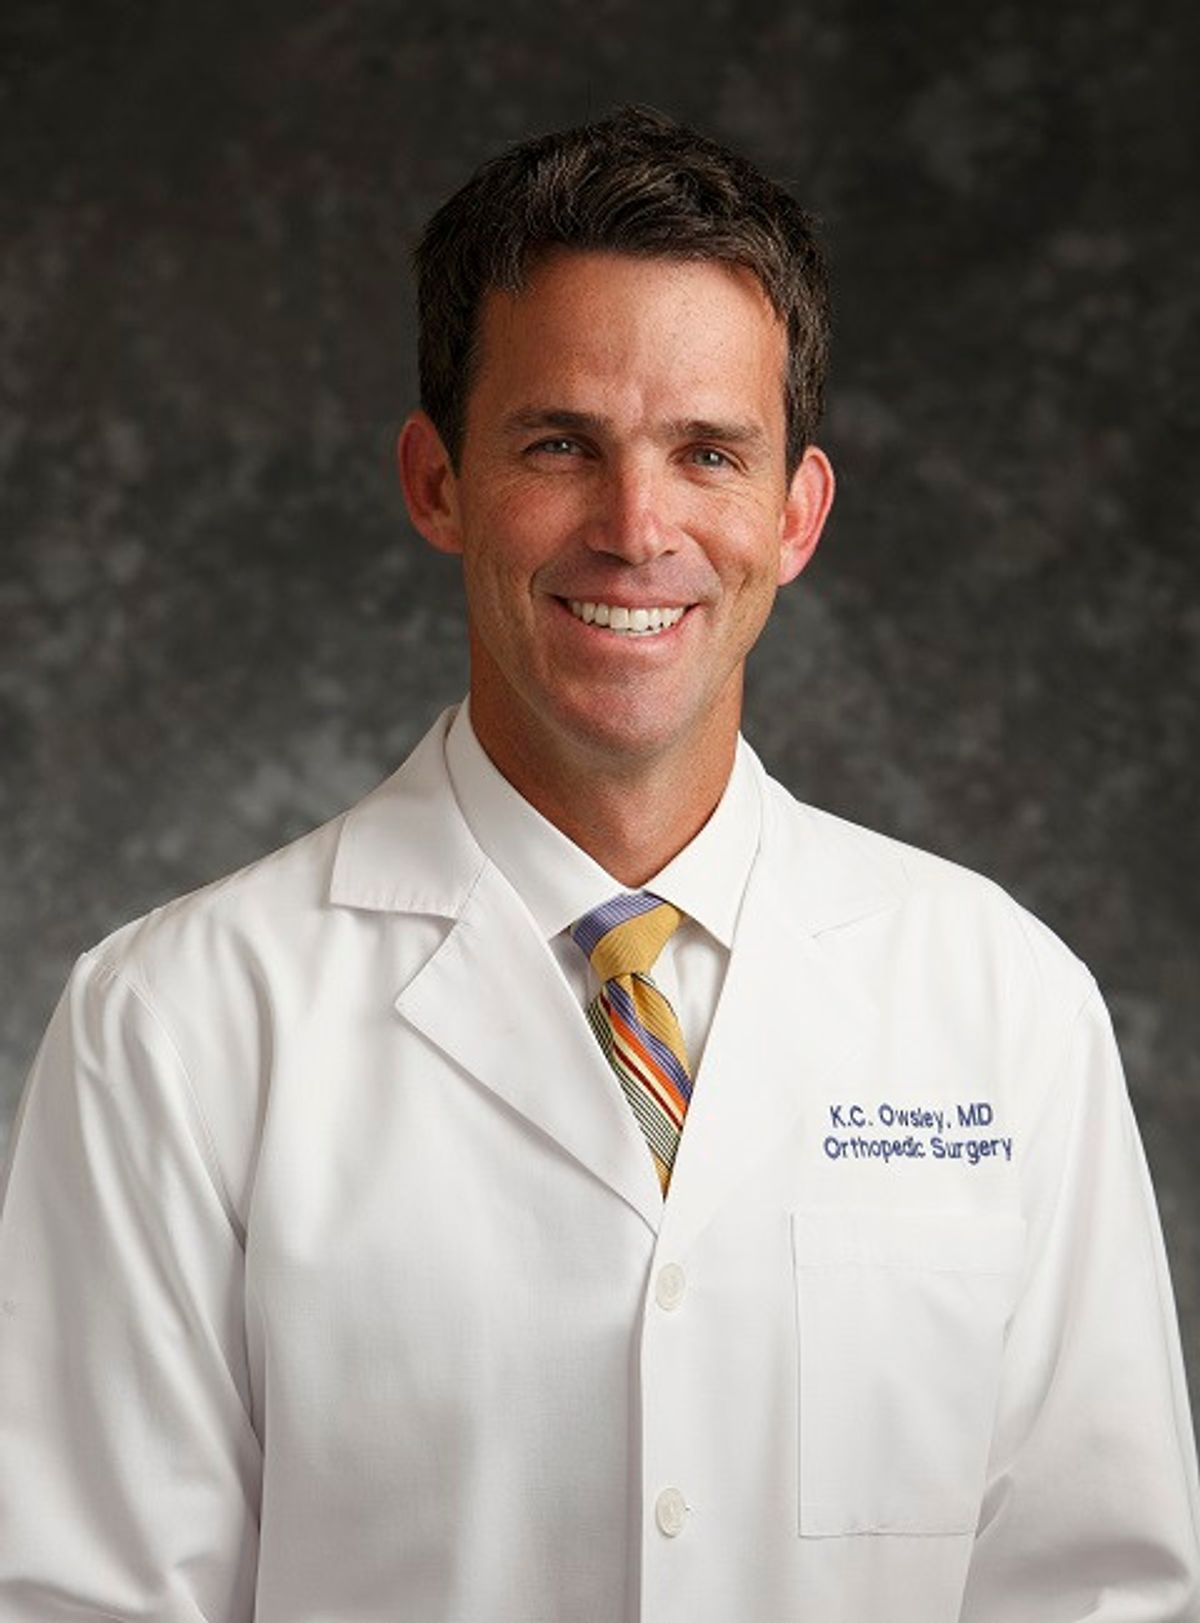 Dr K C Owsley Md Poway Ca 92064